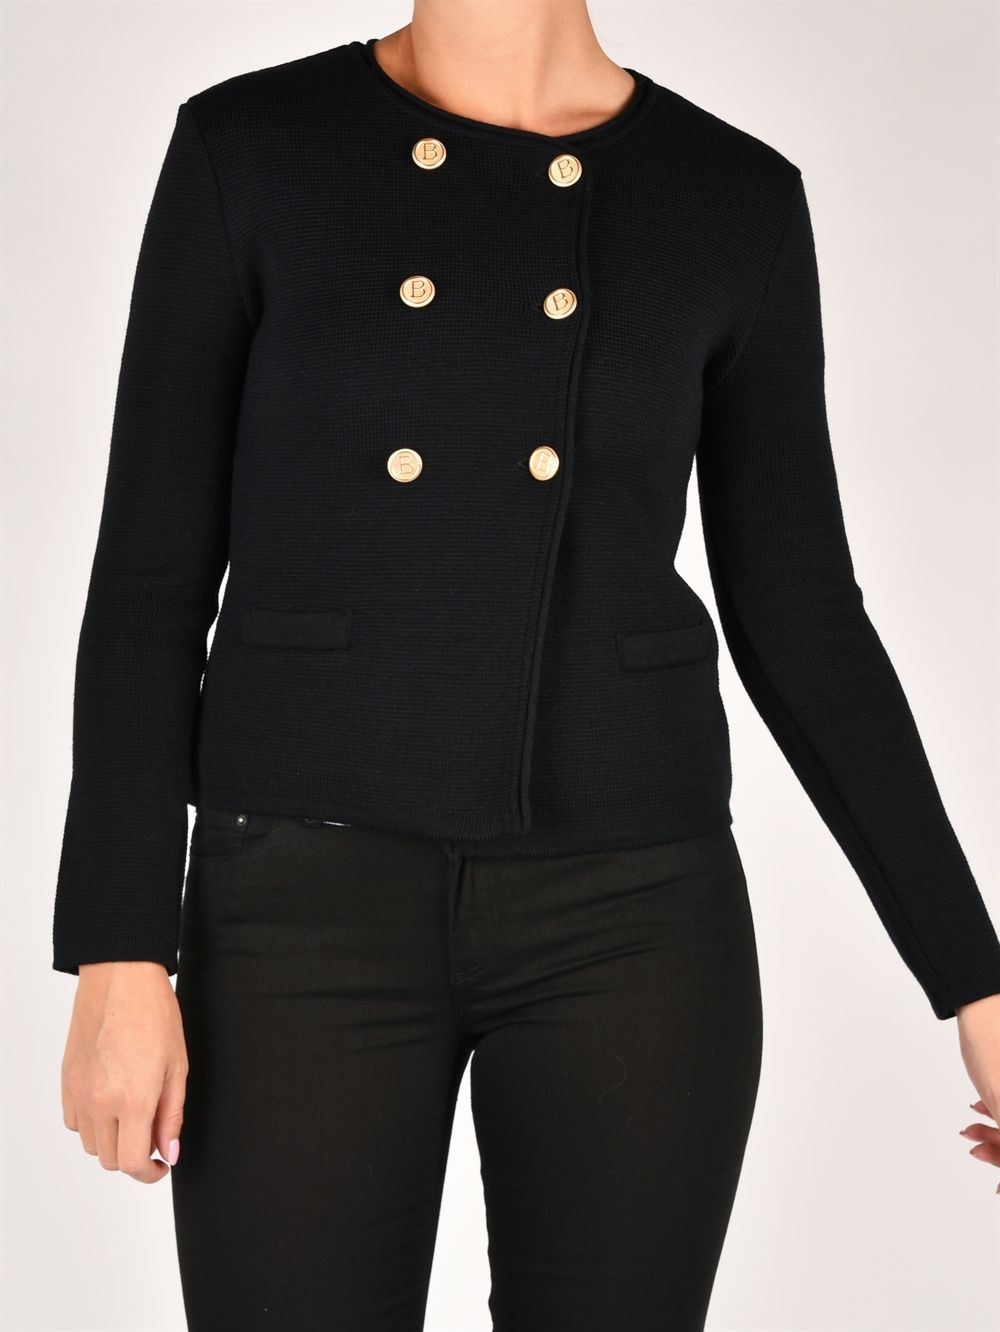 8b9faadda89 Kelly jacket - Jackie | Jackets & Coats | Jackets, Coat och Jumpers